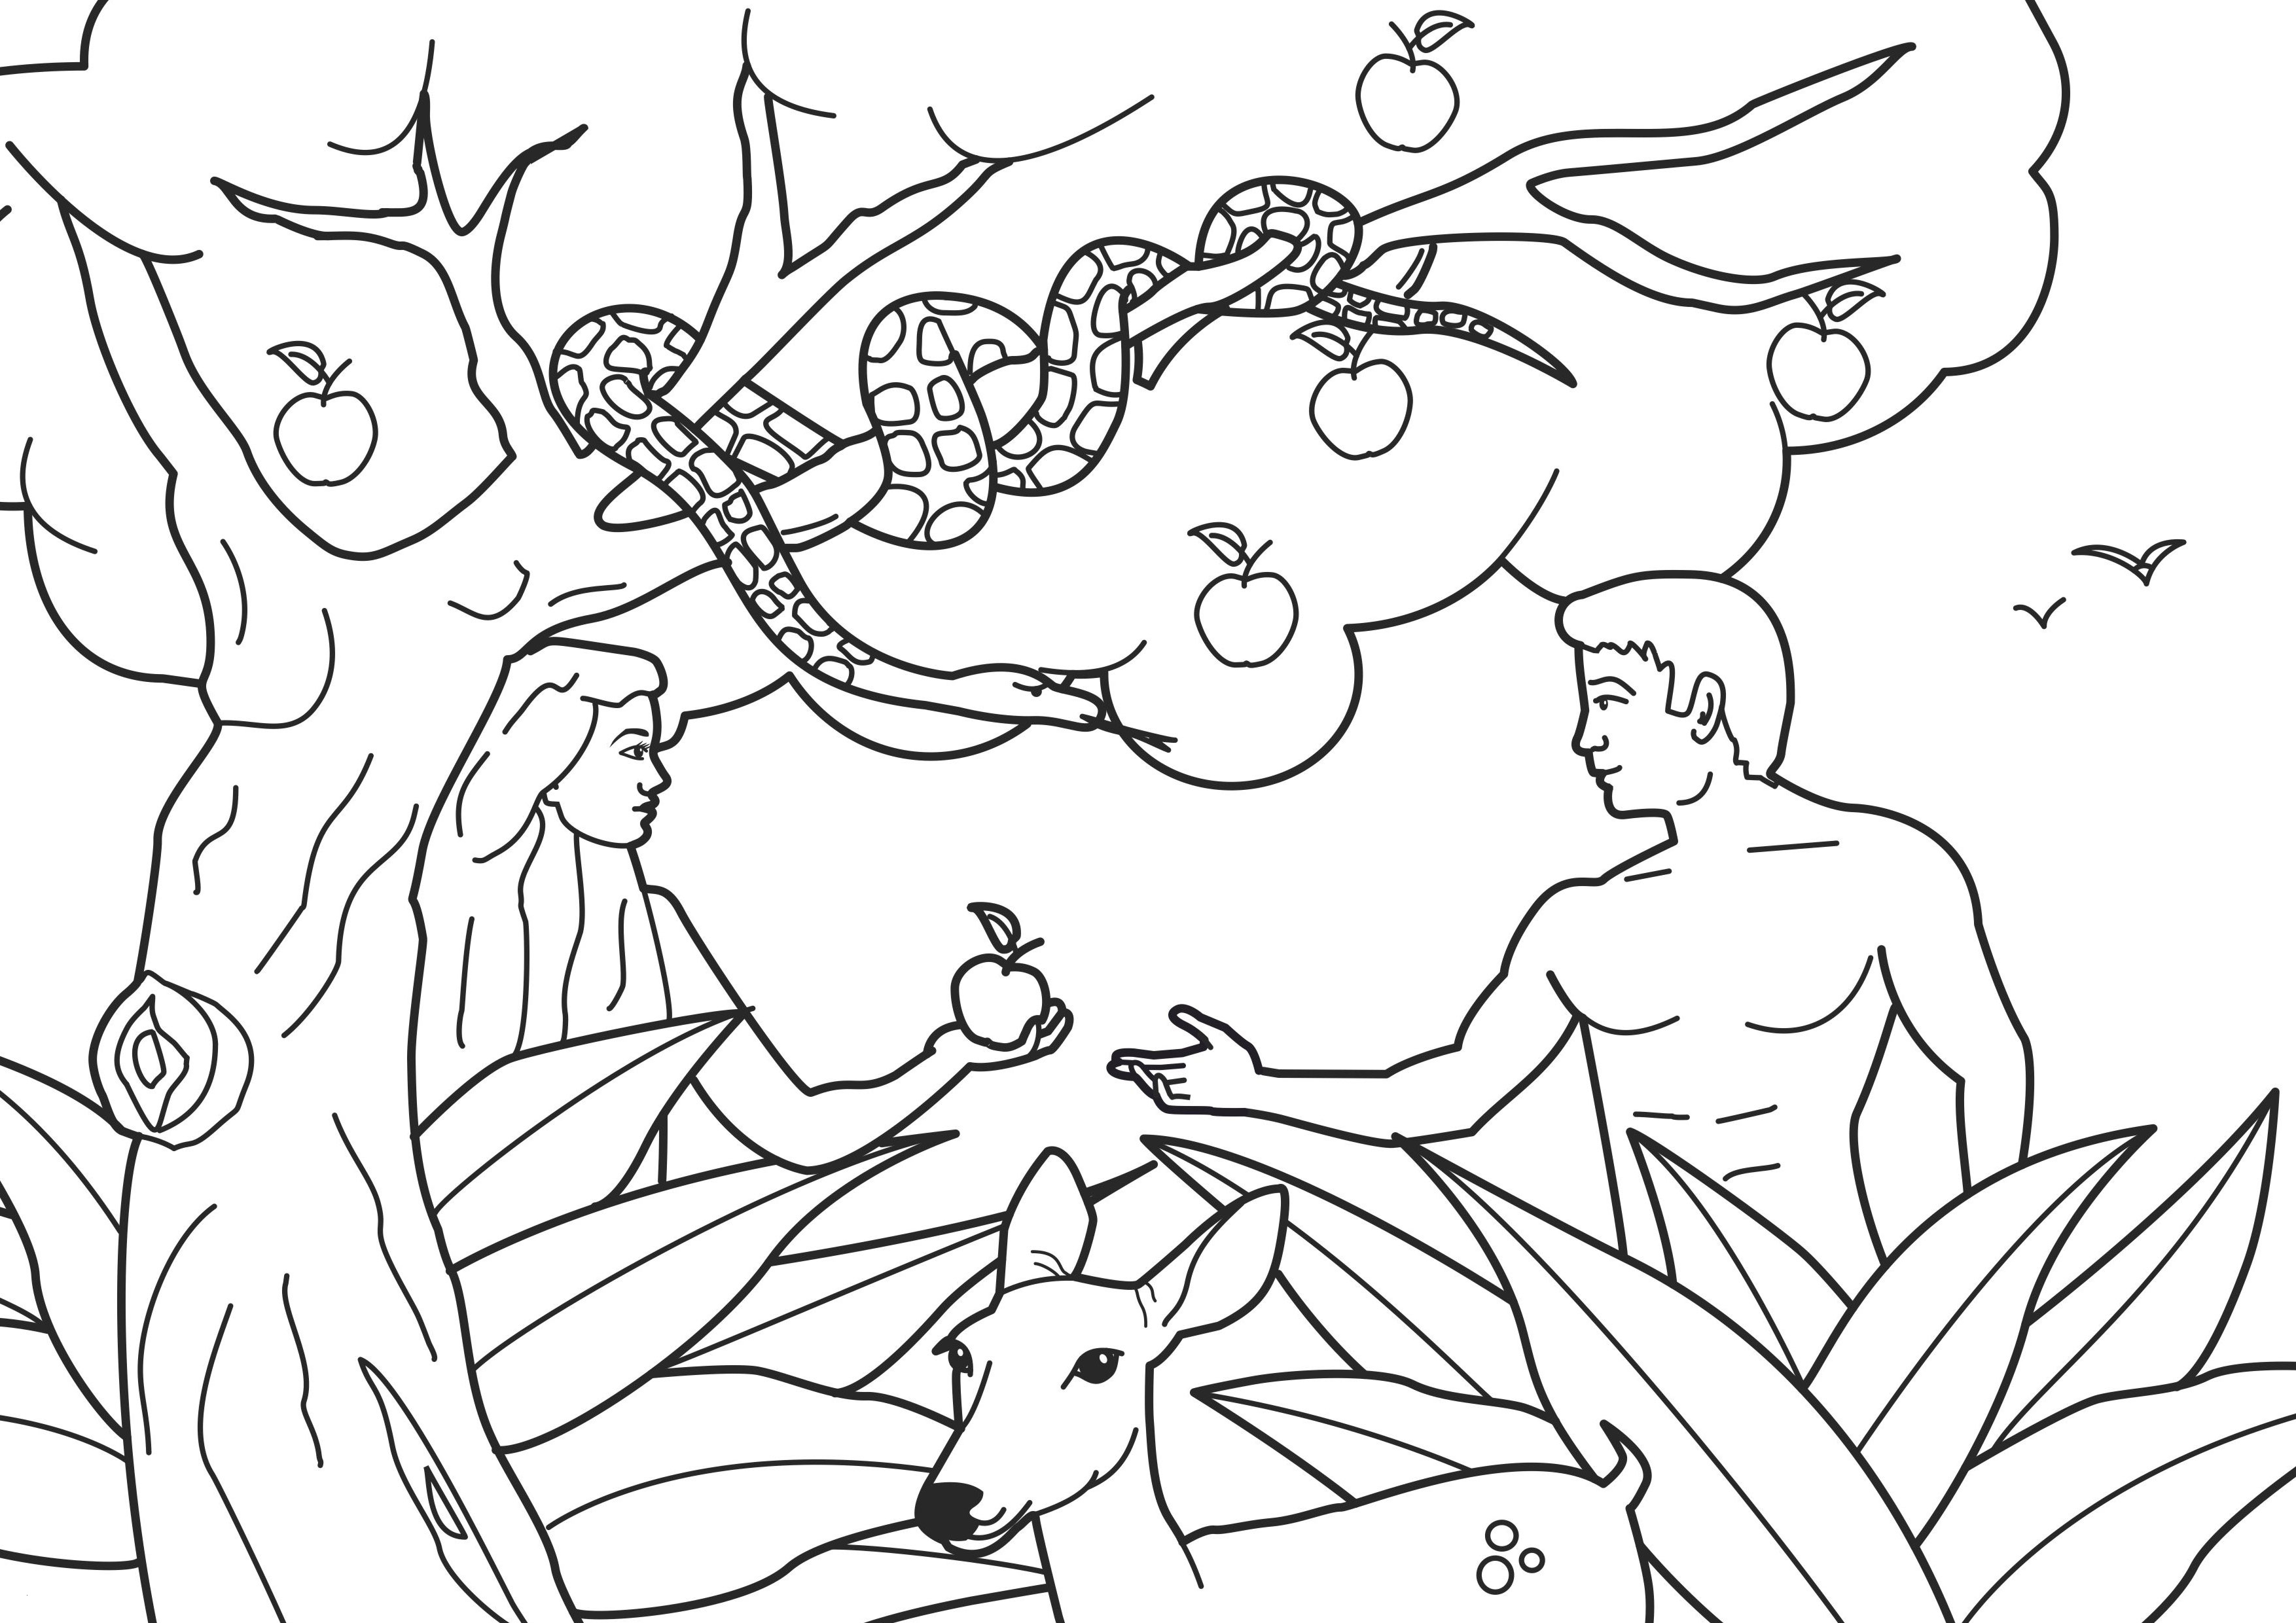 Adam and Eve Coloring Pages  Collection 16g - Save it to your computer